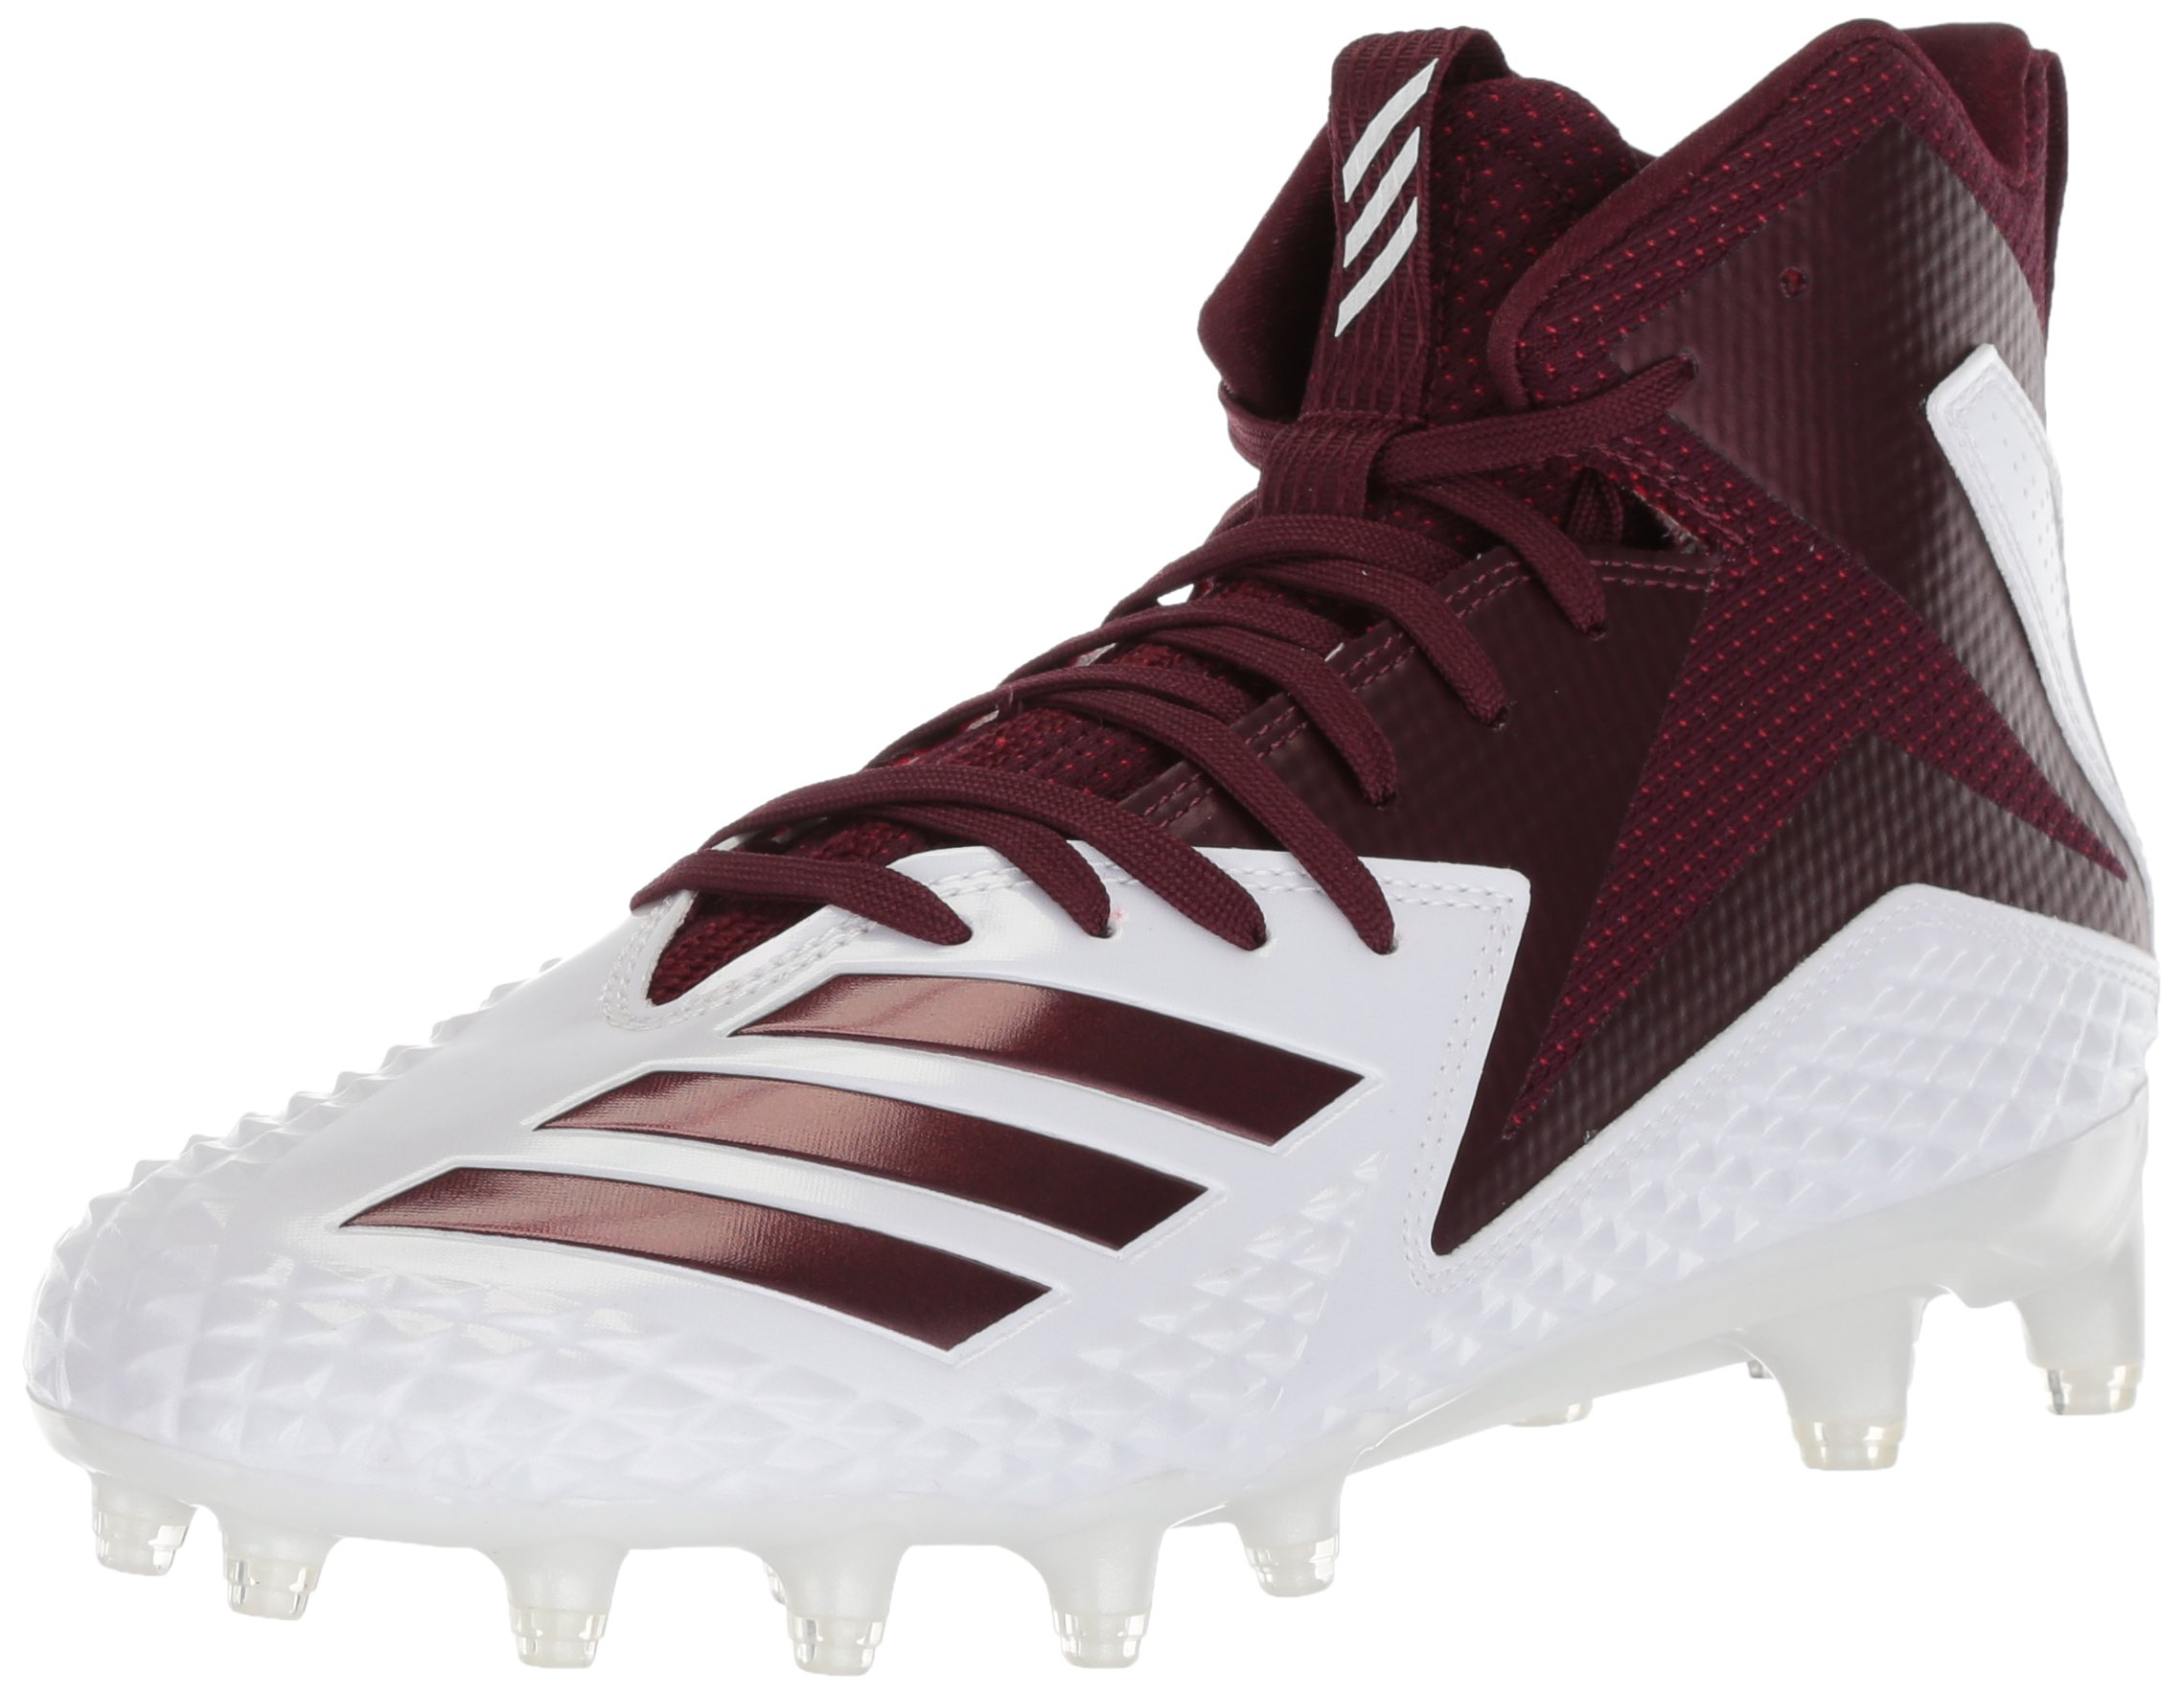 adidas Men's Freak X Carbon Mid Football Shoe, White/Maroon/Maroon, 12 M US